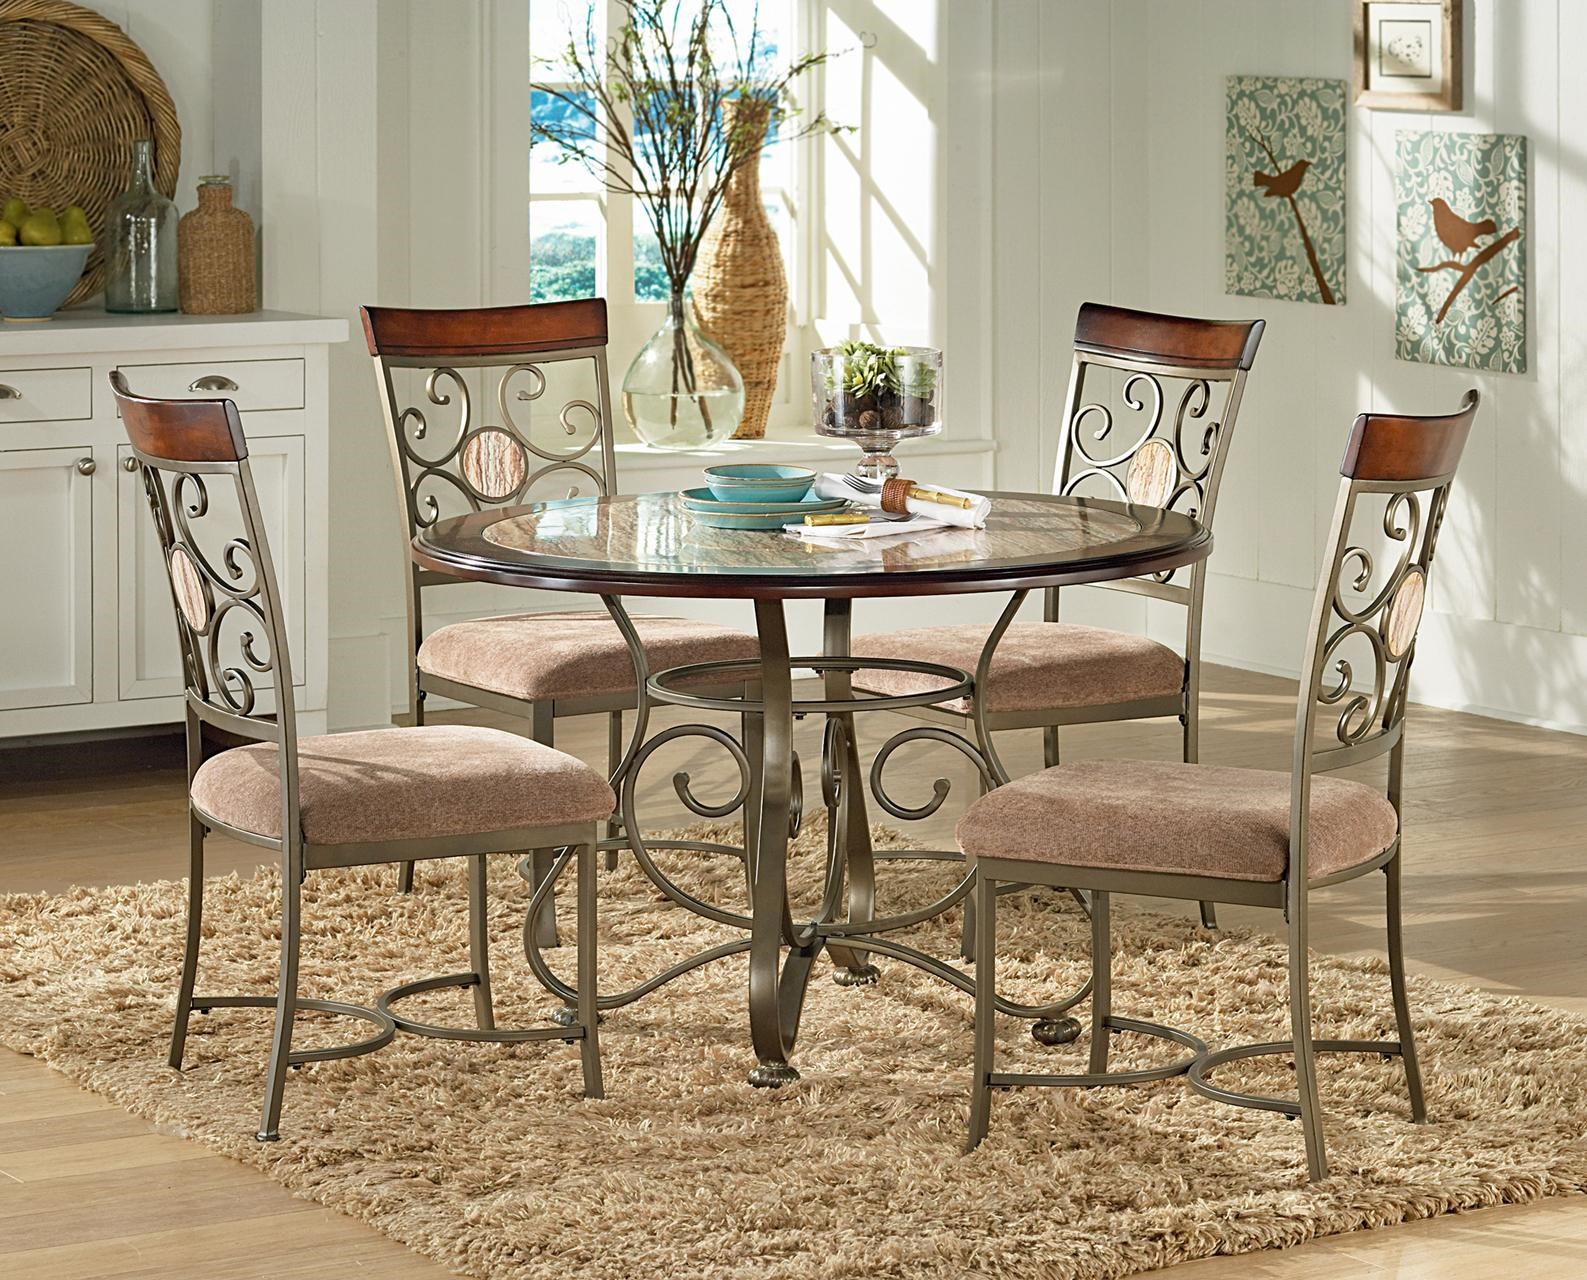 Thompson 5 Piece Metal Base Table And Suncatcher Dining Chair Set By Steve Silver At Knight Furniture Mattress